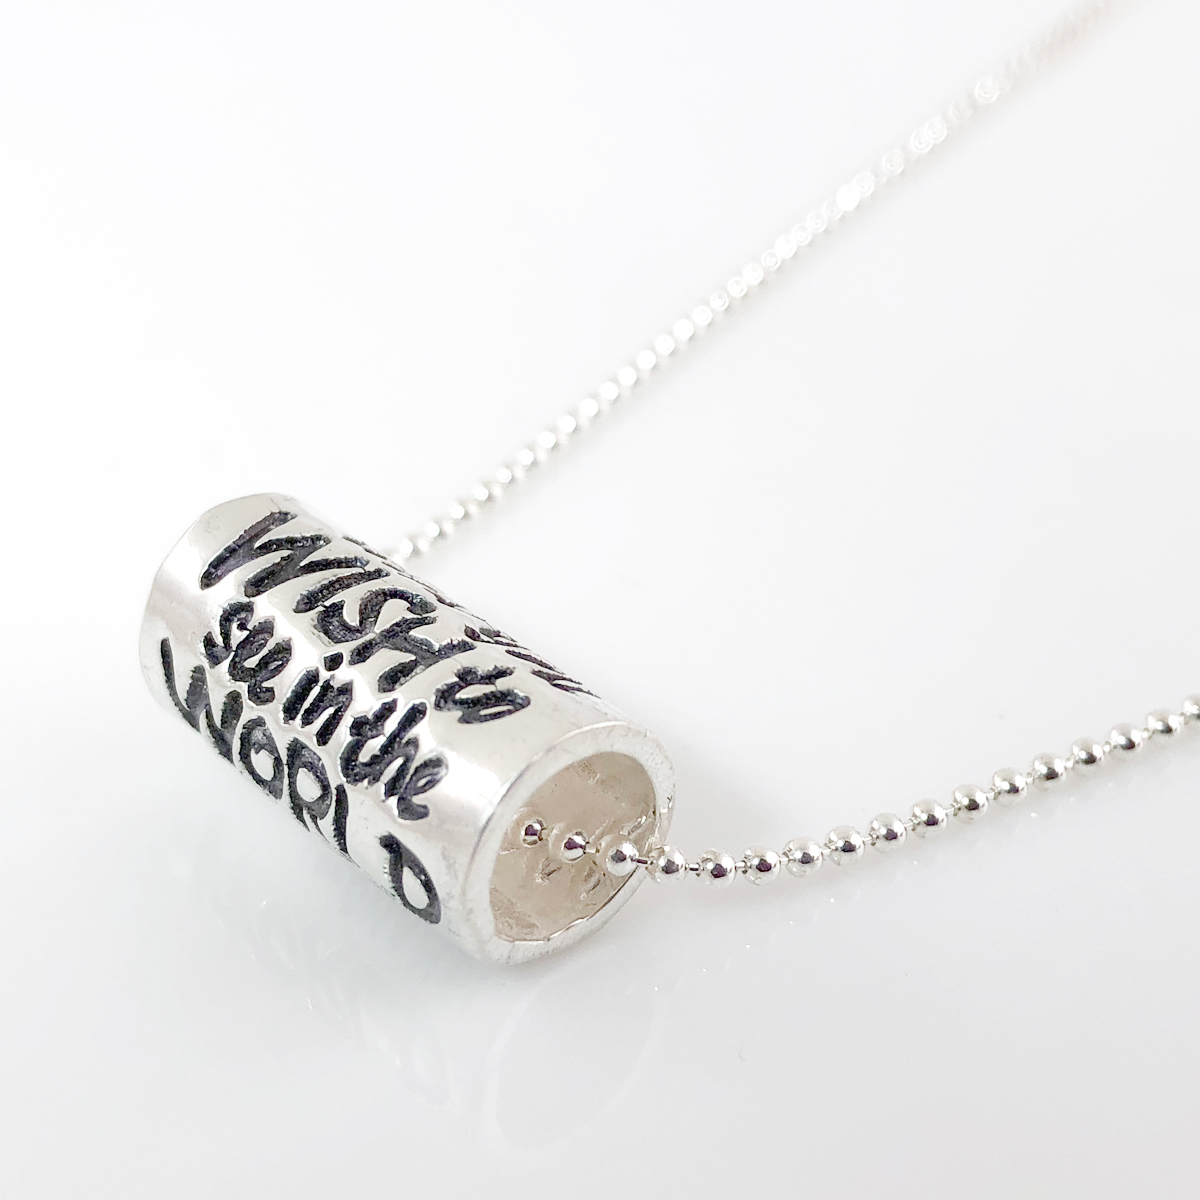 Inspirational Quote Slider Bead - Be The Change